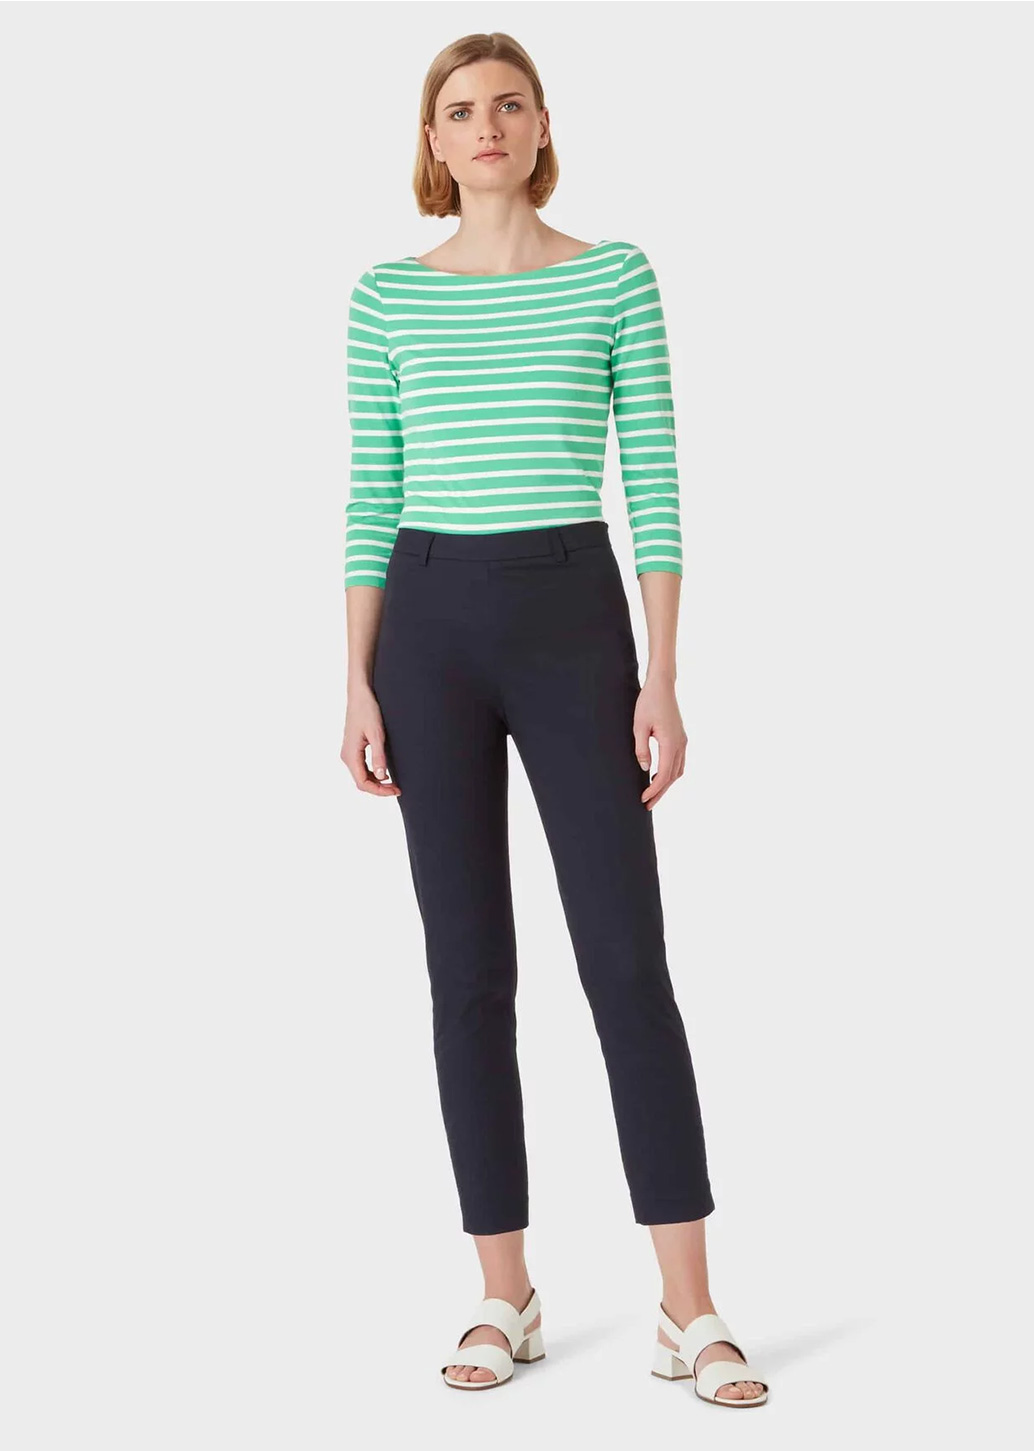 Blonde woman poses in a studio wearing navy blue slim fit trousers and a green and white striped top.